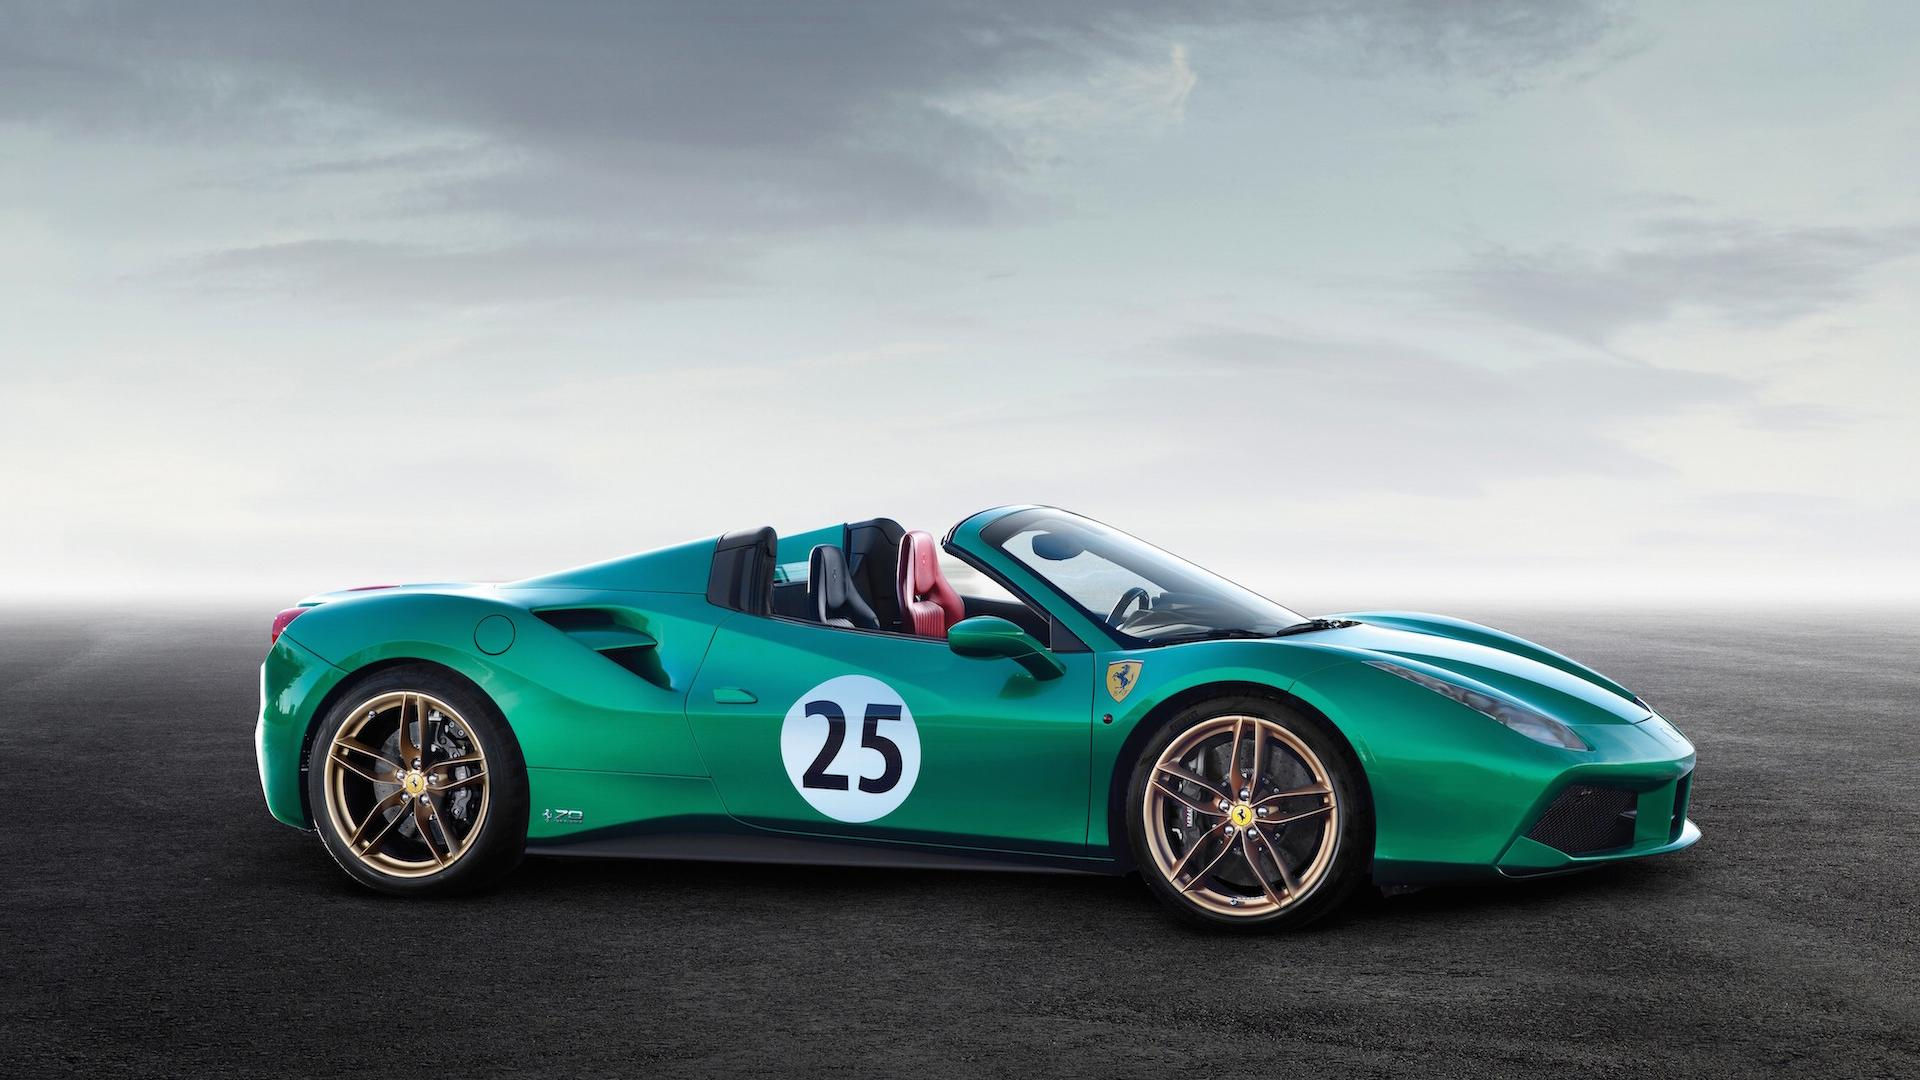 ferrari 488 spider 39 green jewel 39 sells for a whopping 1 3m update. Black Bedroom Furniture Sets. Home Design Ideas